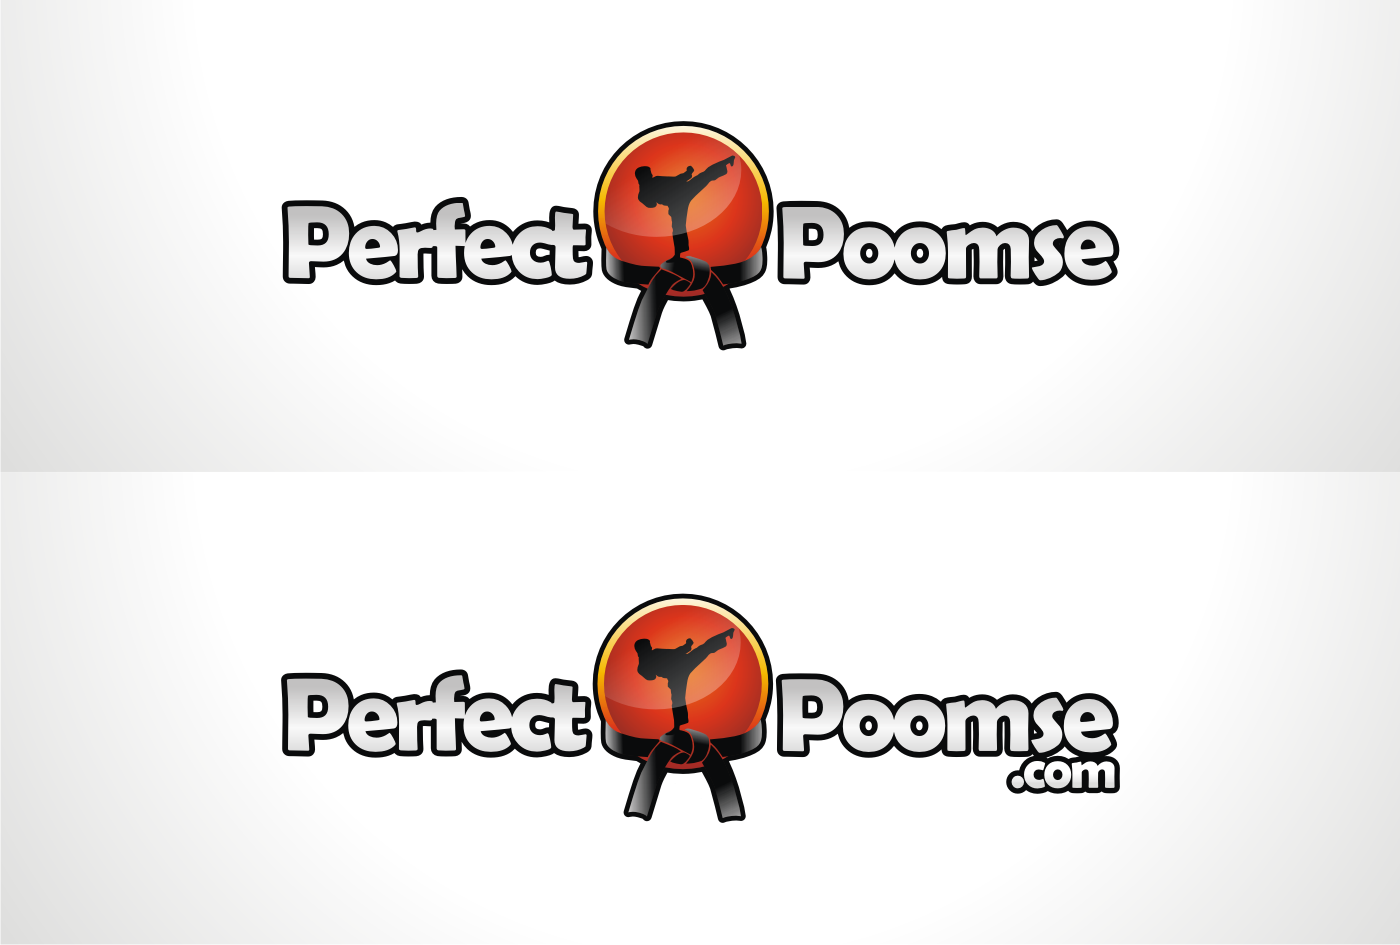 Create the next logo for Perfect Poomse.com